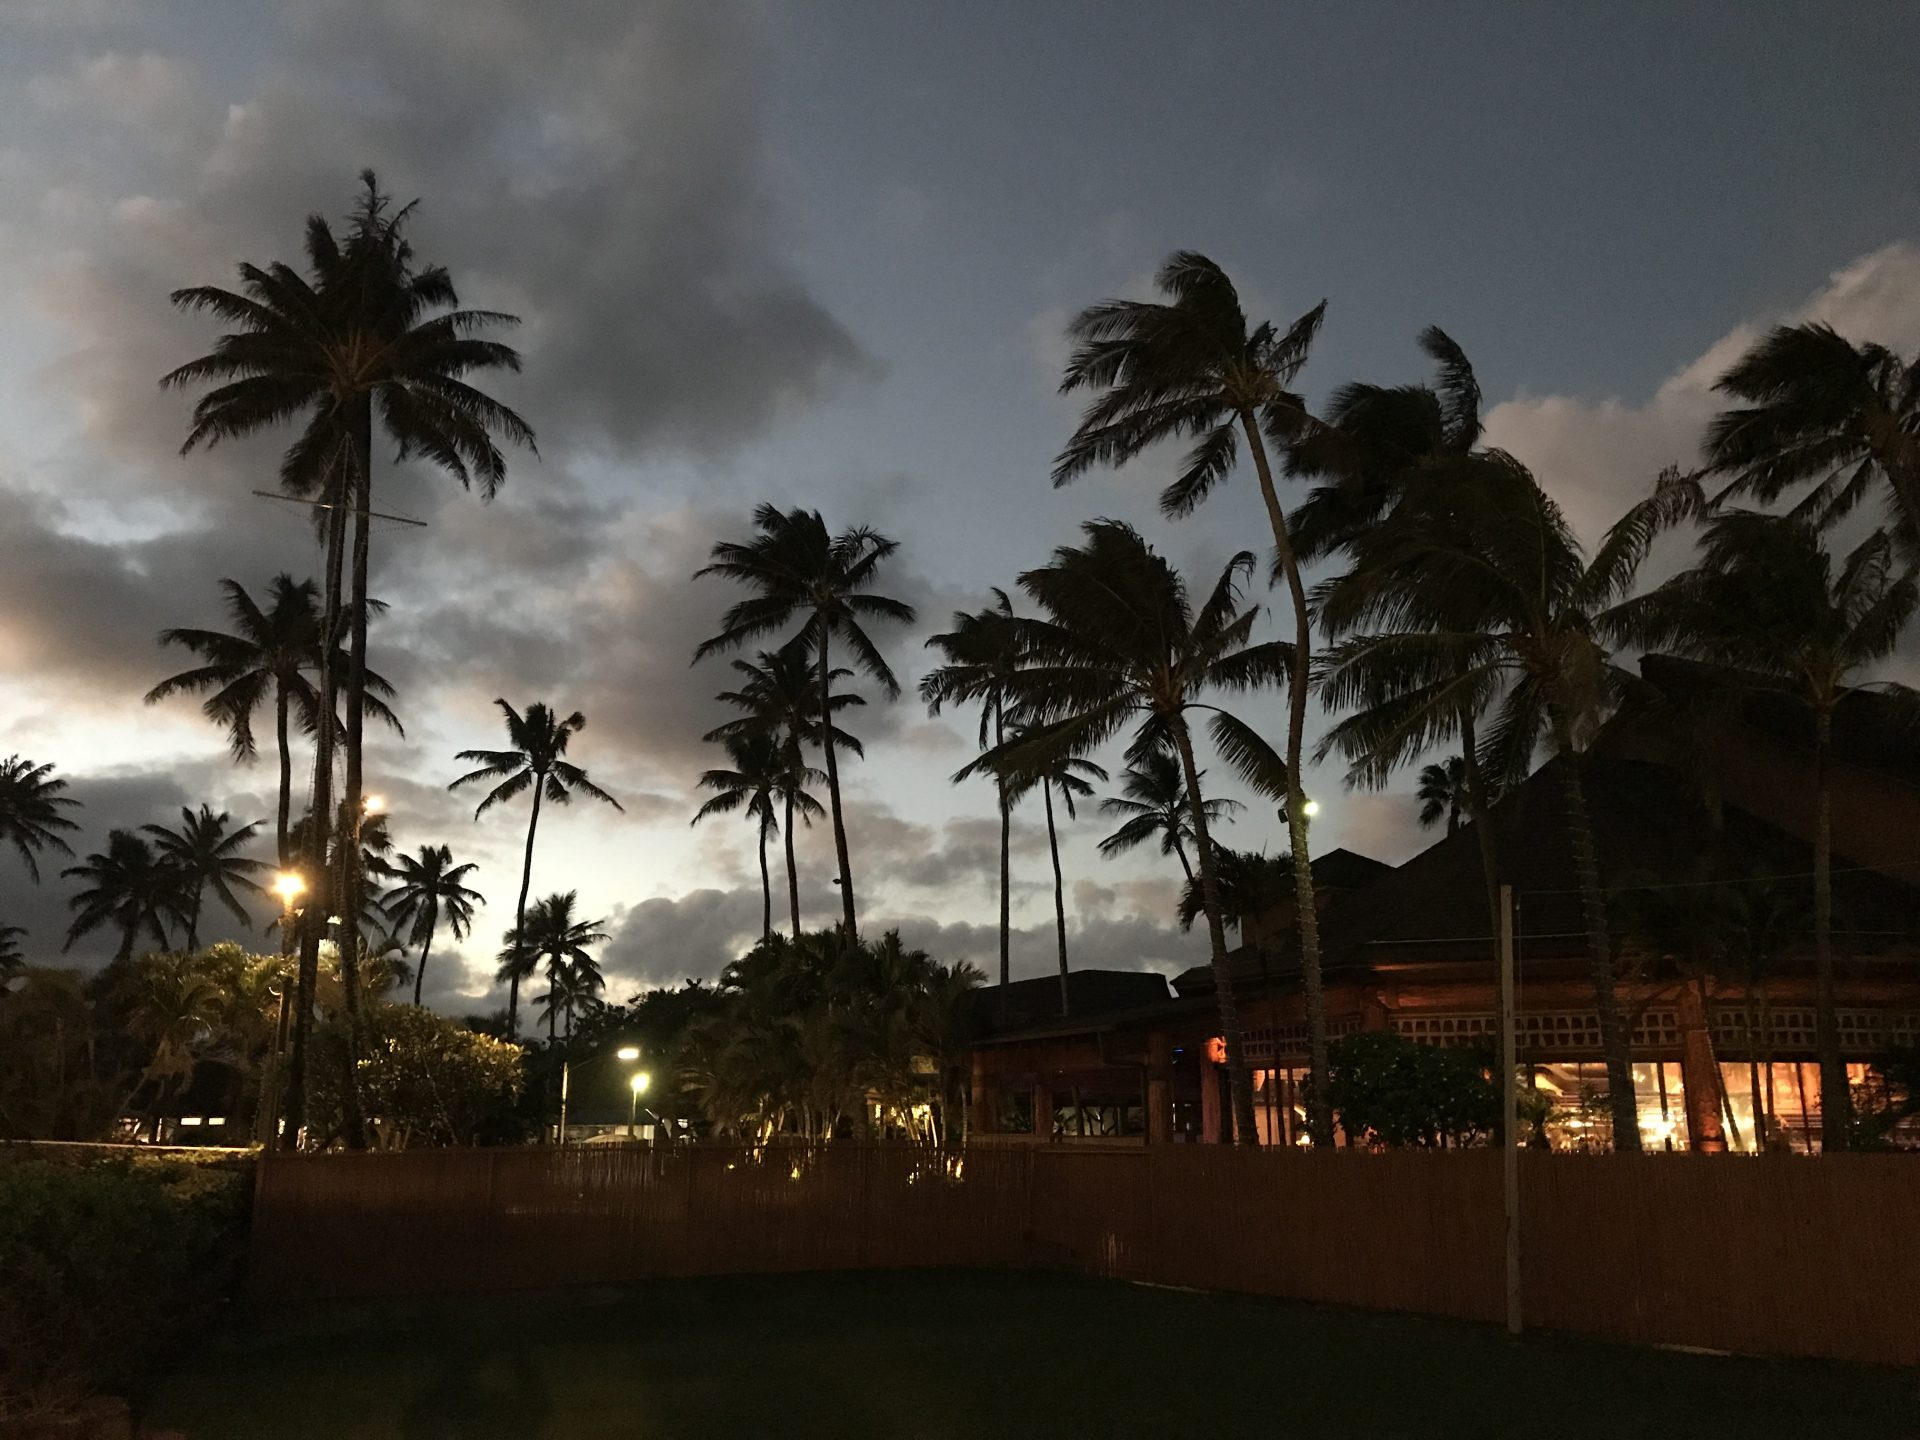 Sunset at the Polynesian Cultural Center. (Photo: Courtesy Laura Cozzolino)